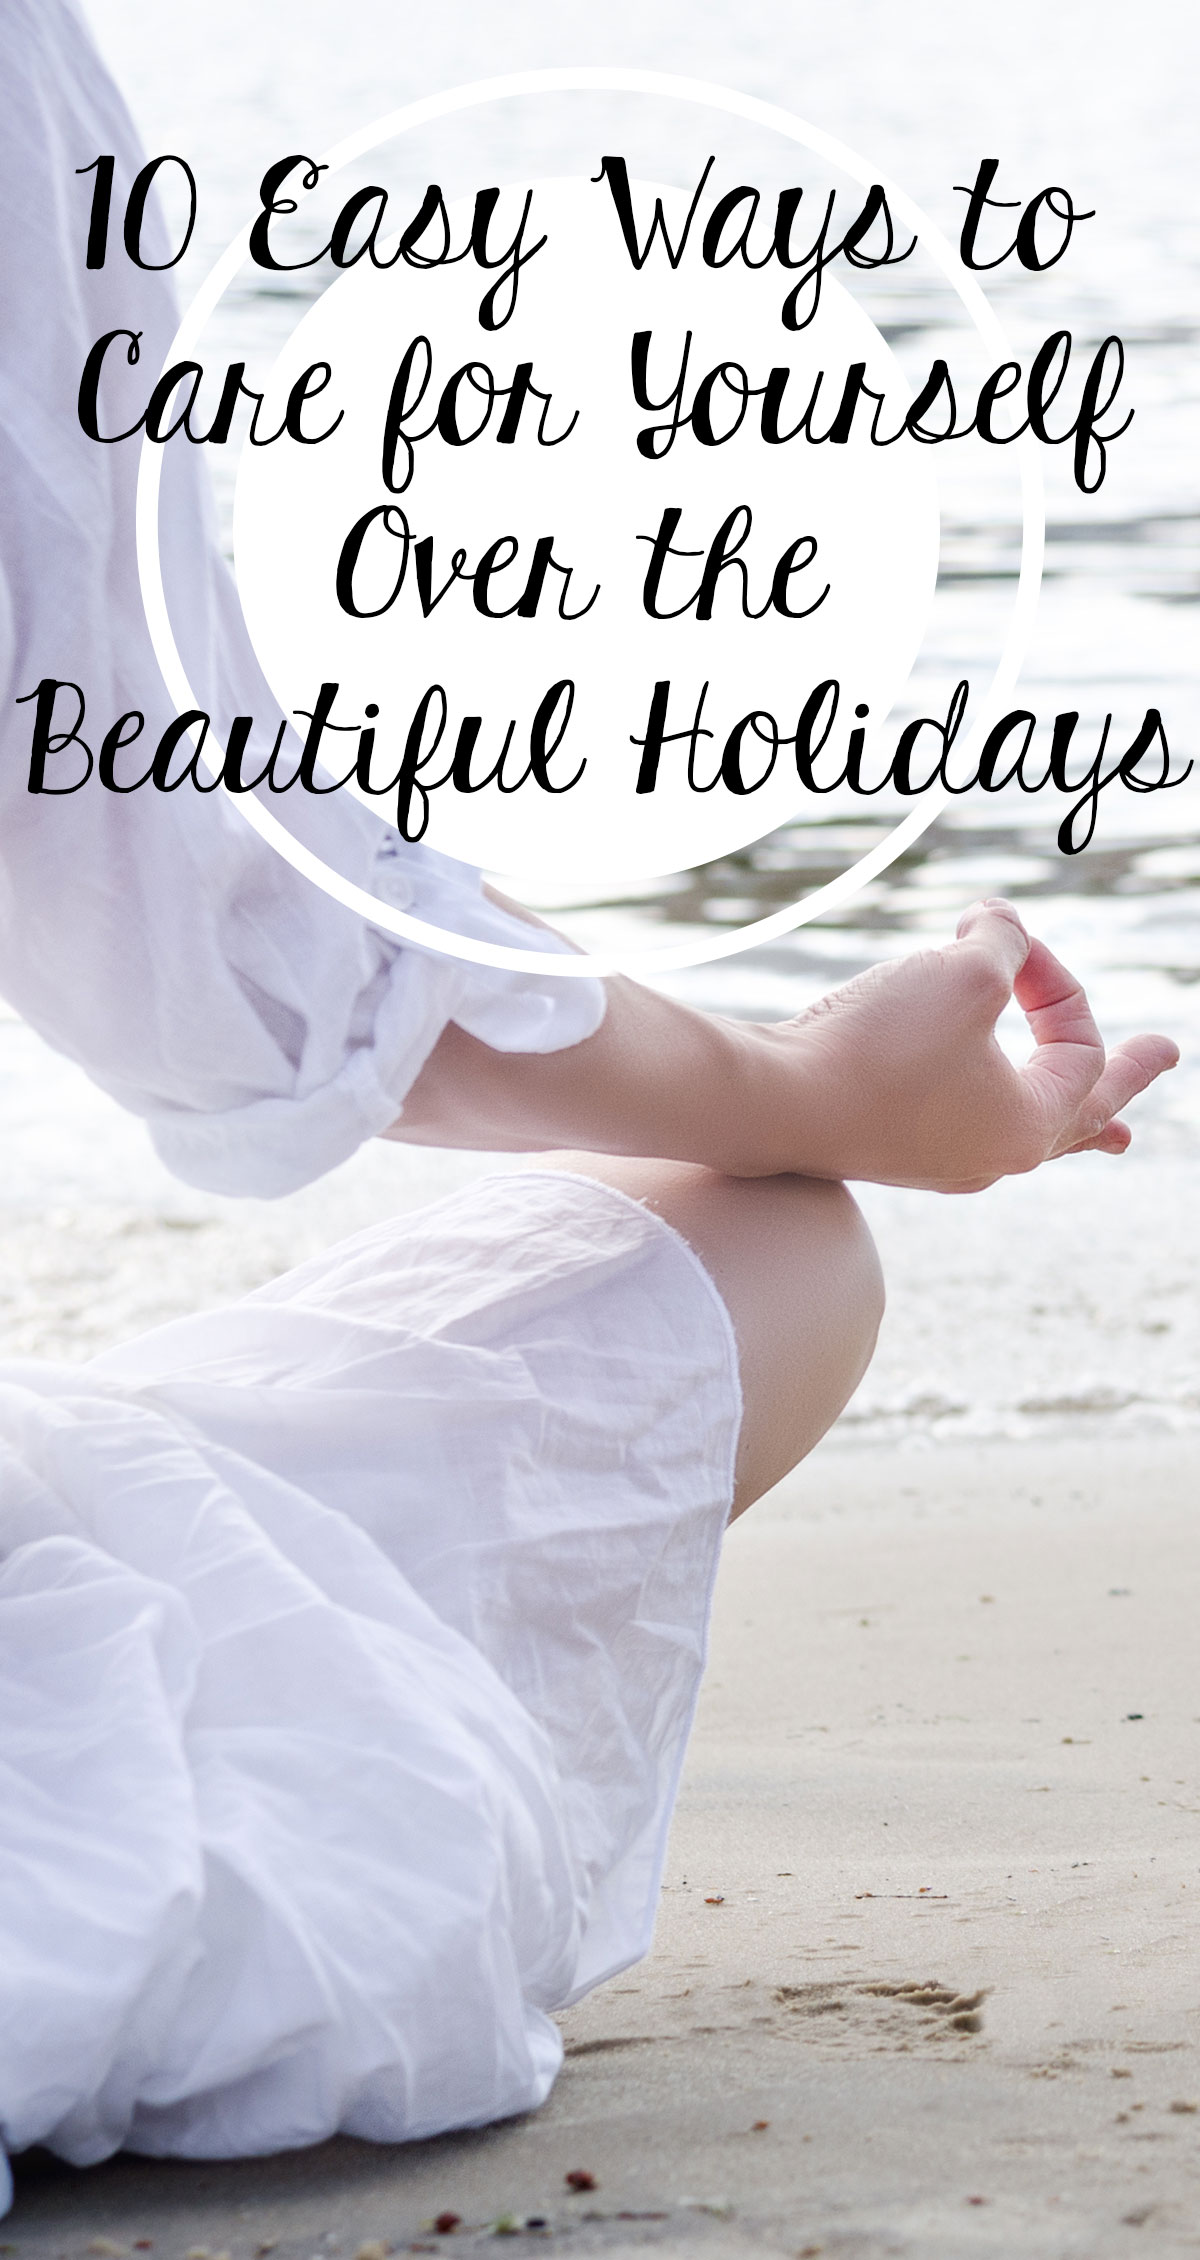 10 Easy Ways To Care for Yourself Over The Beautiful Holidays Pin